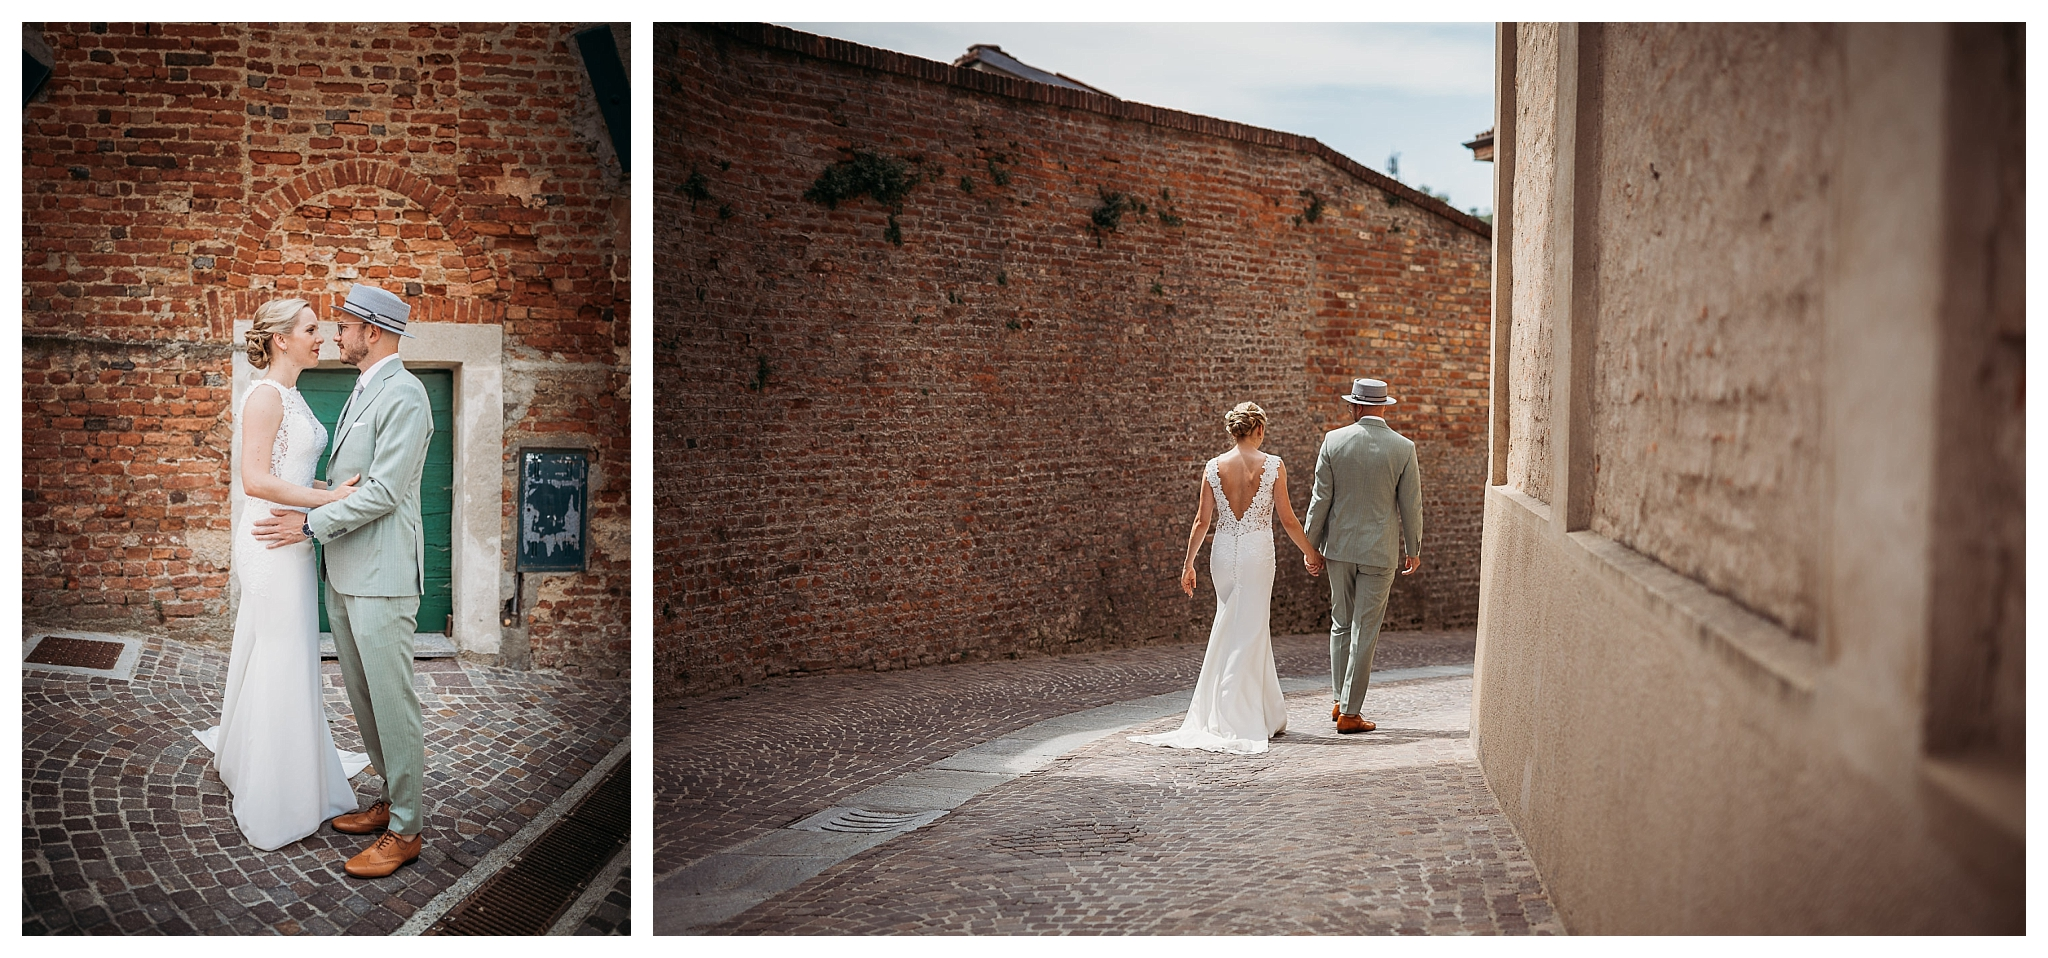 Bride and groom having their wedding photoshoot in Italy